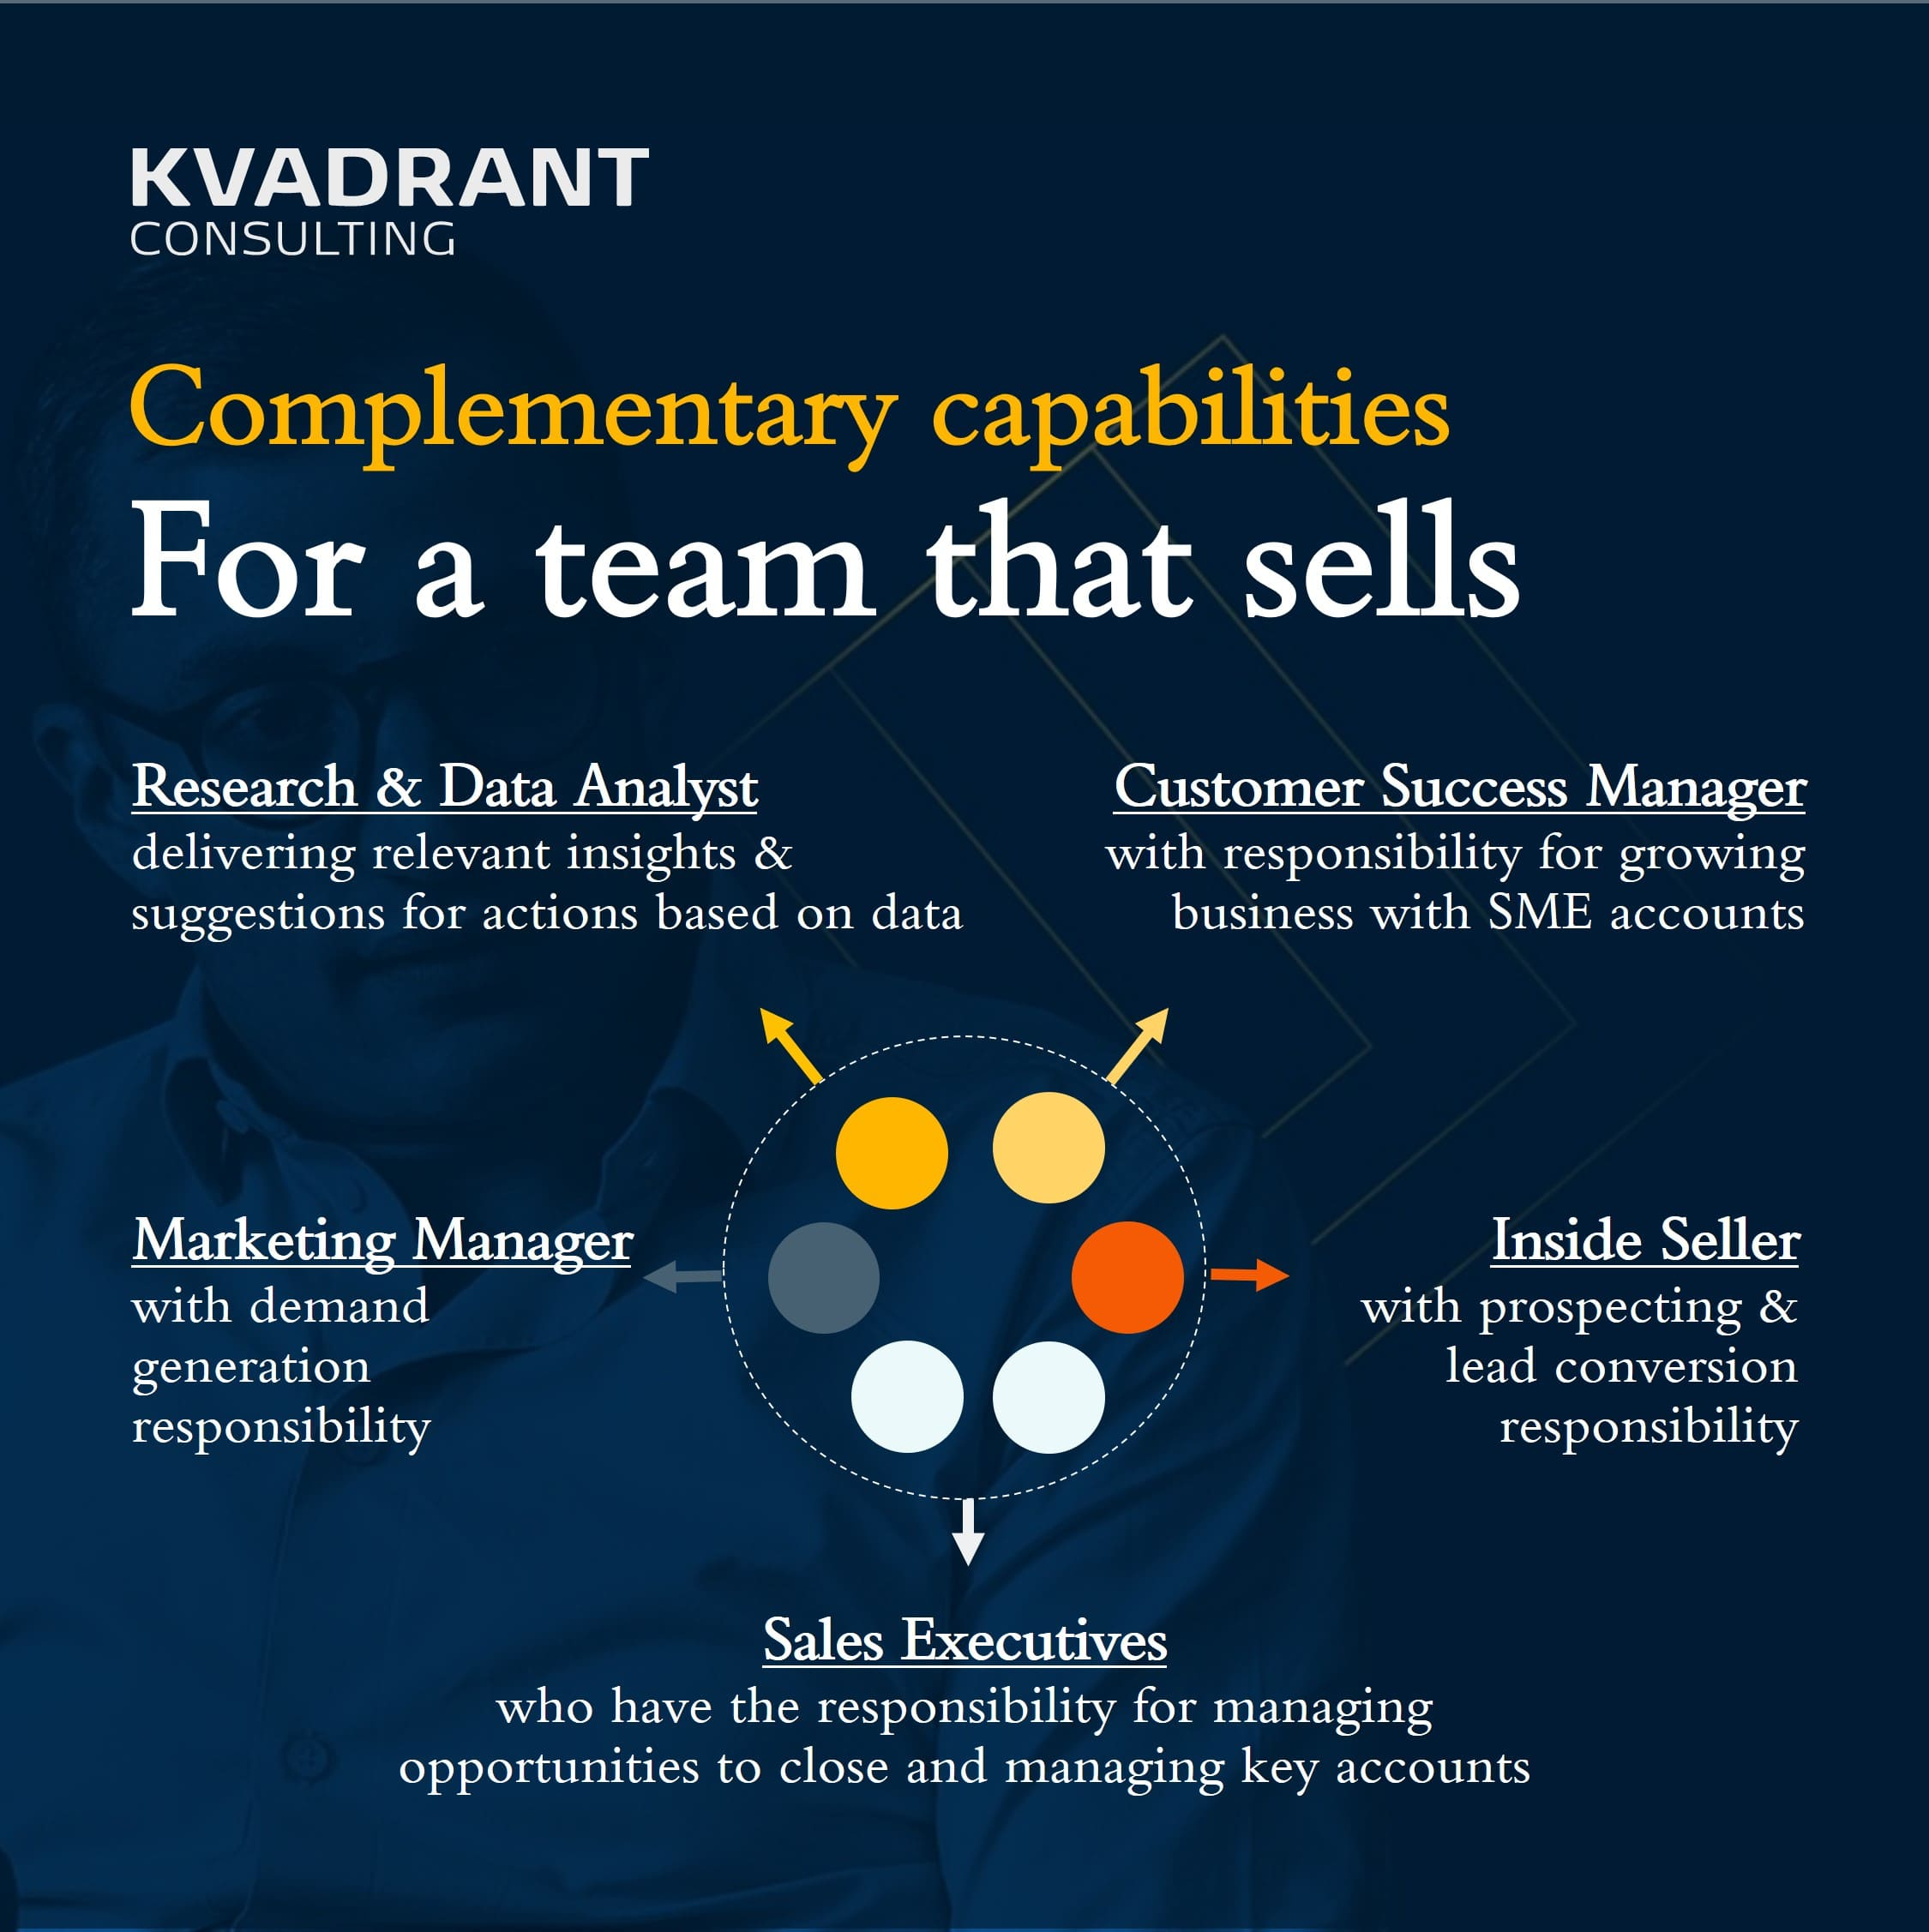 Illustrative example of a team that sells